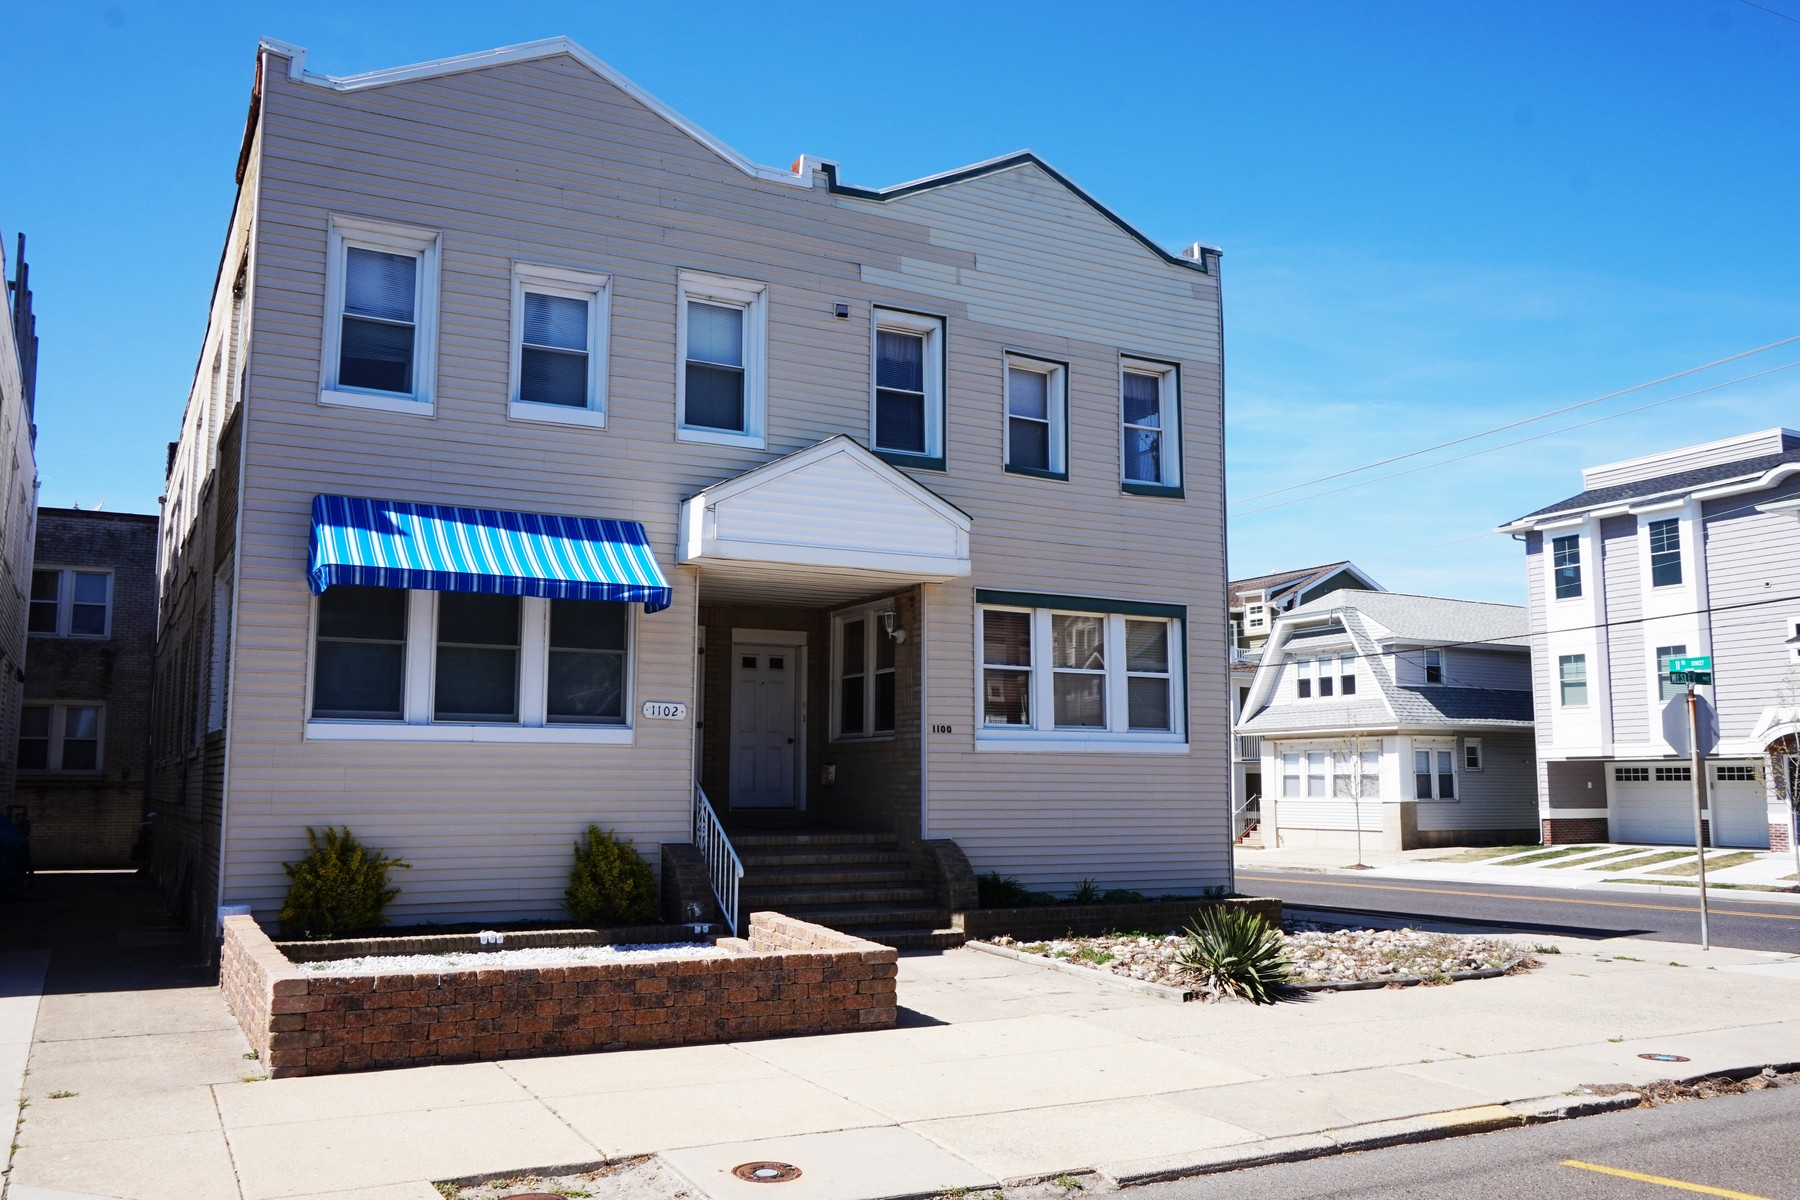 Condominium for Sale at Two Short Blocks to the Beach 1100 Wesley Avenue 2nd Floor Ocean City, New Jersey 08226 United States